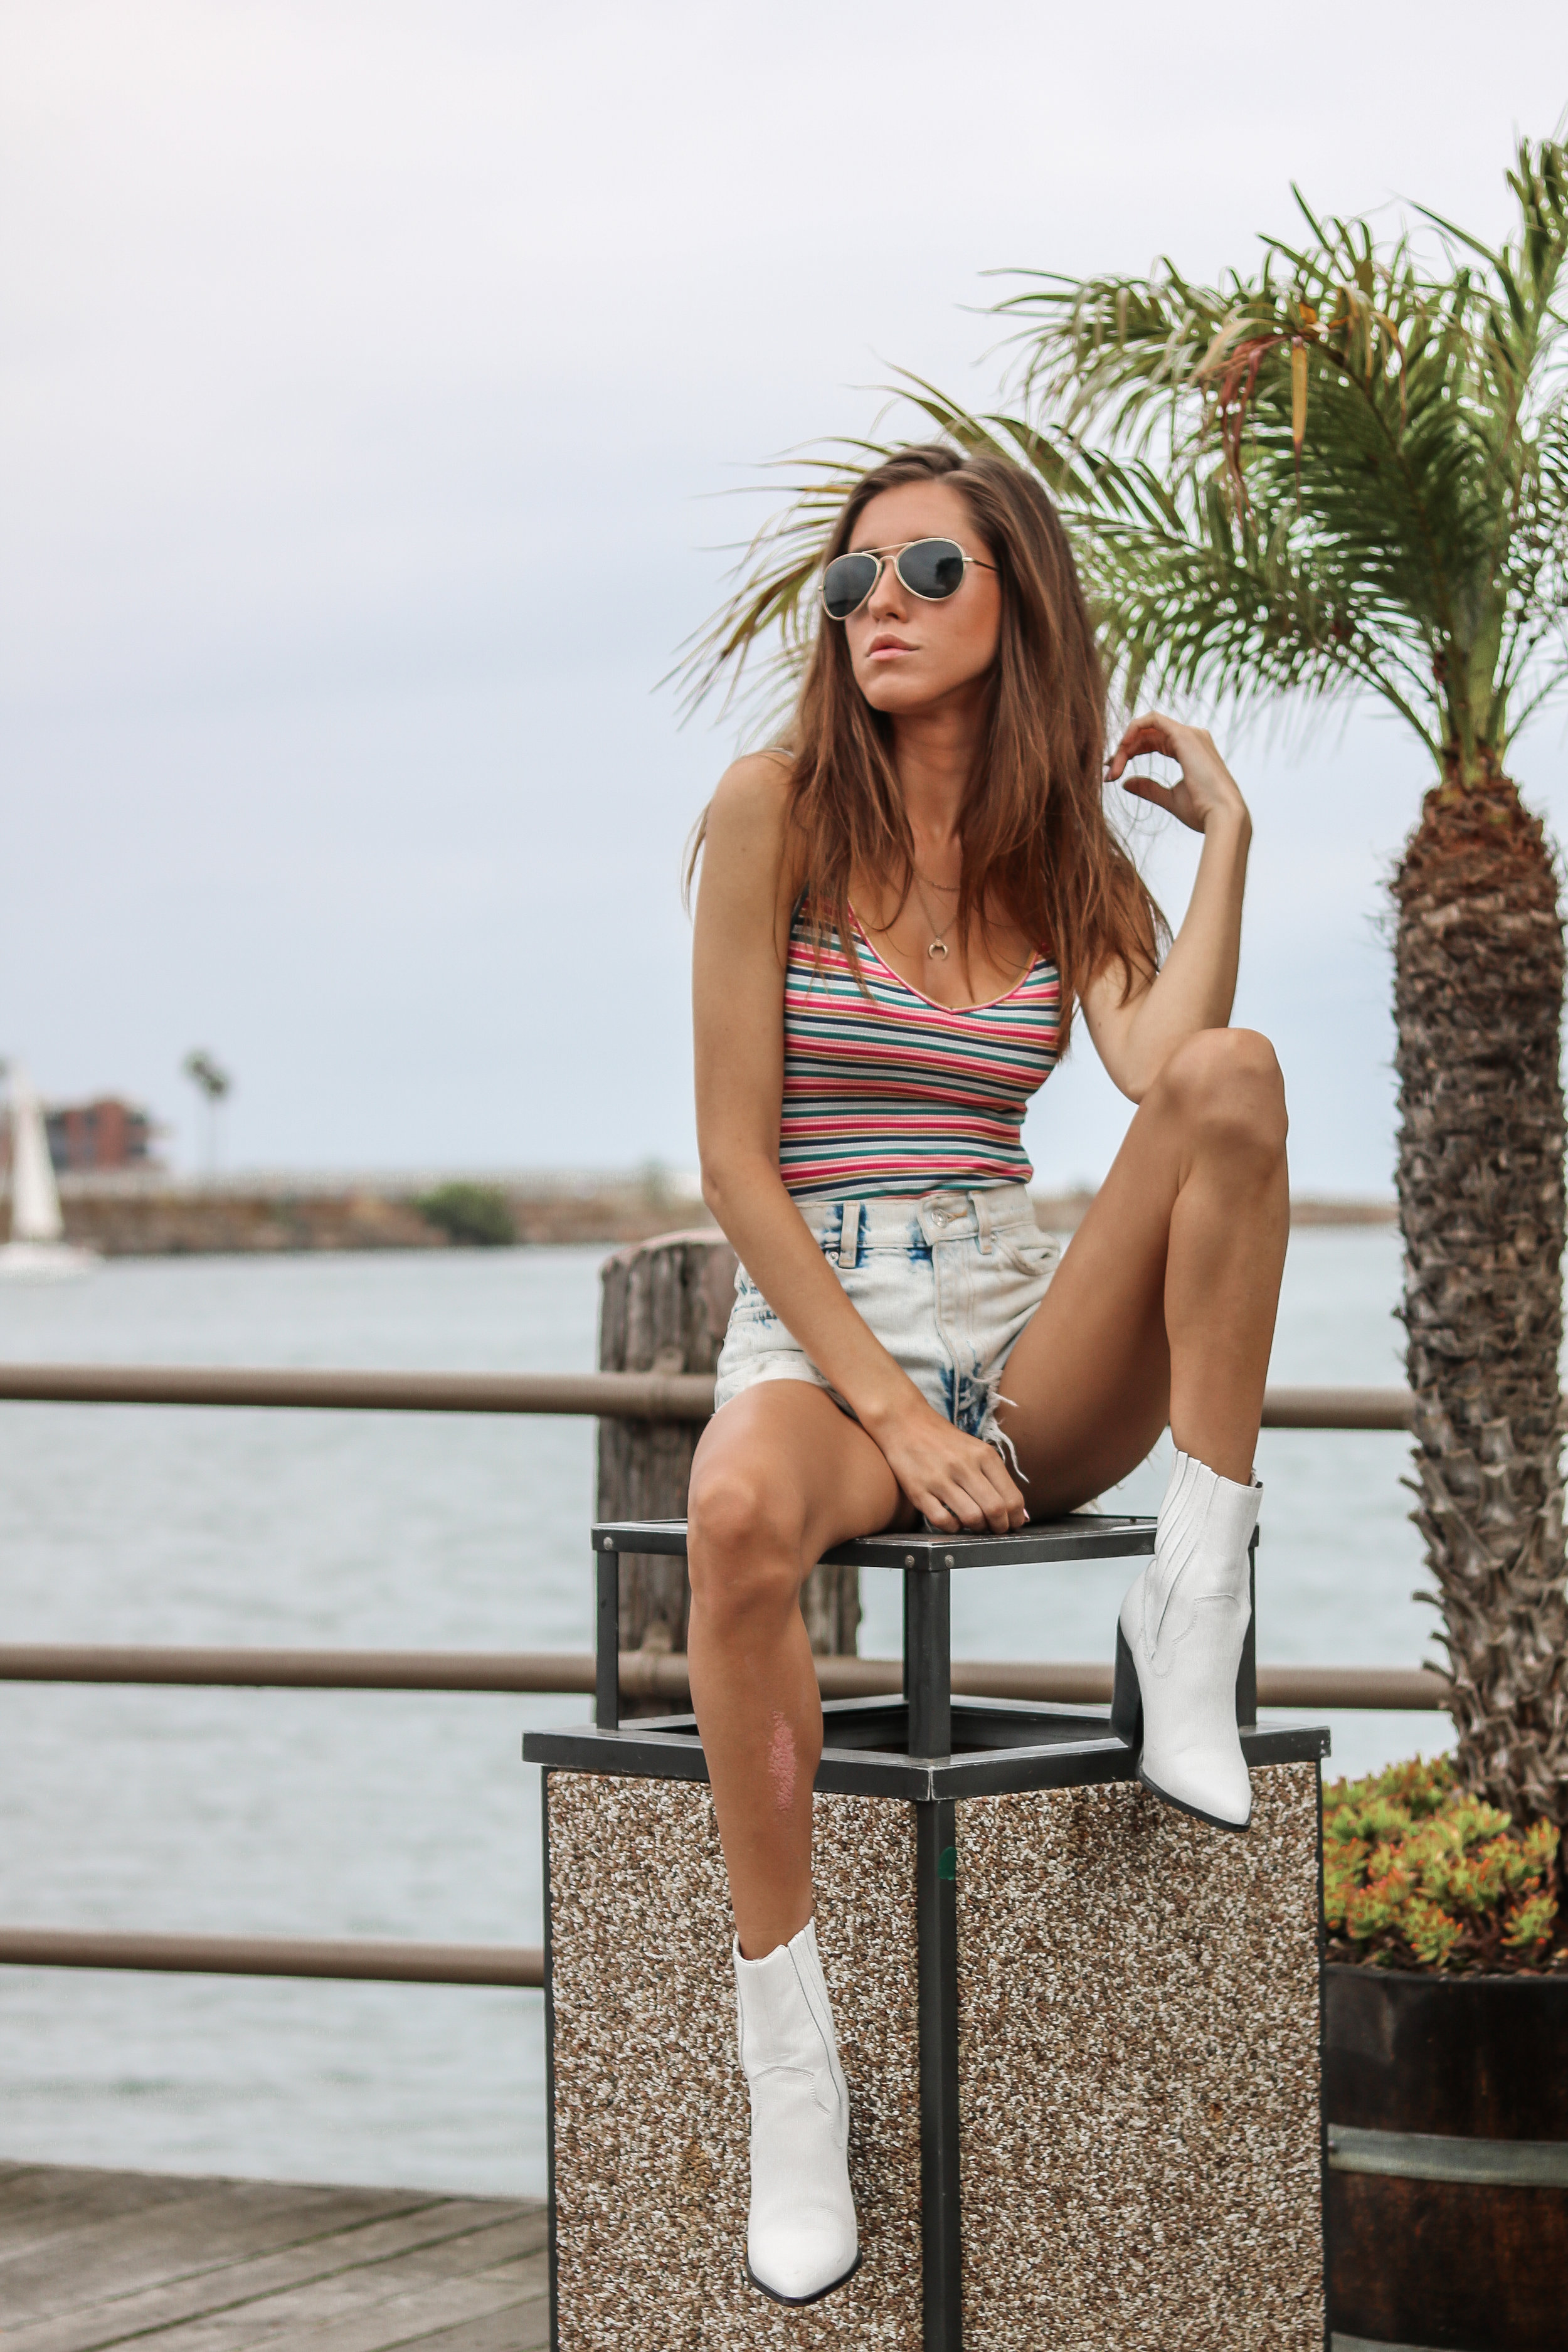 The Hungarian Brunette 5 fashion rules you should always break